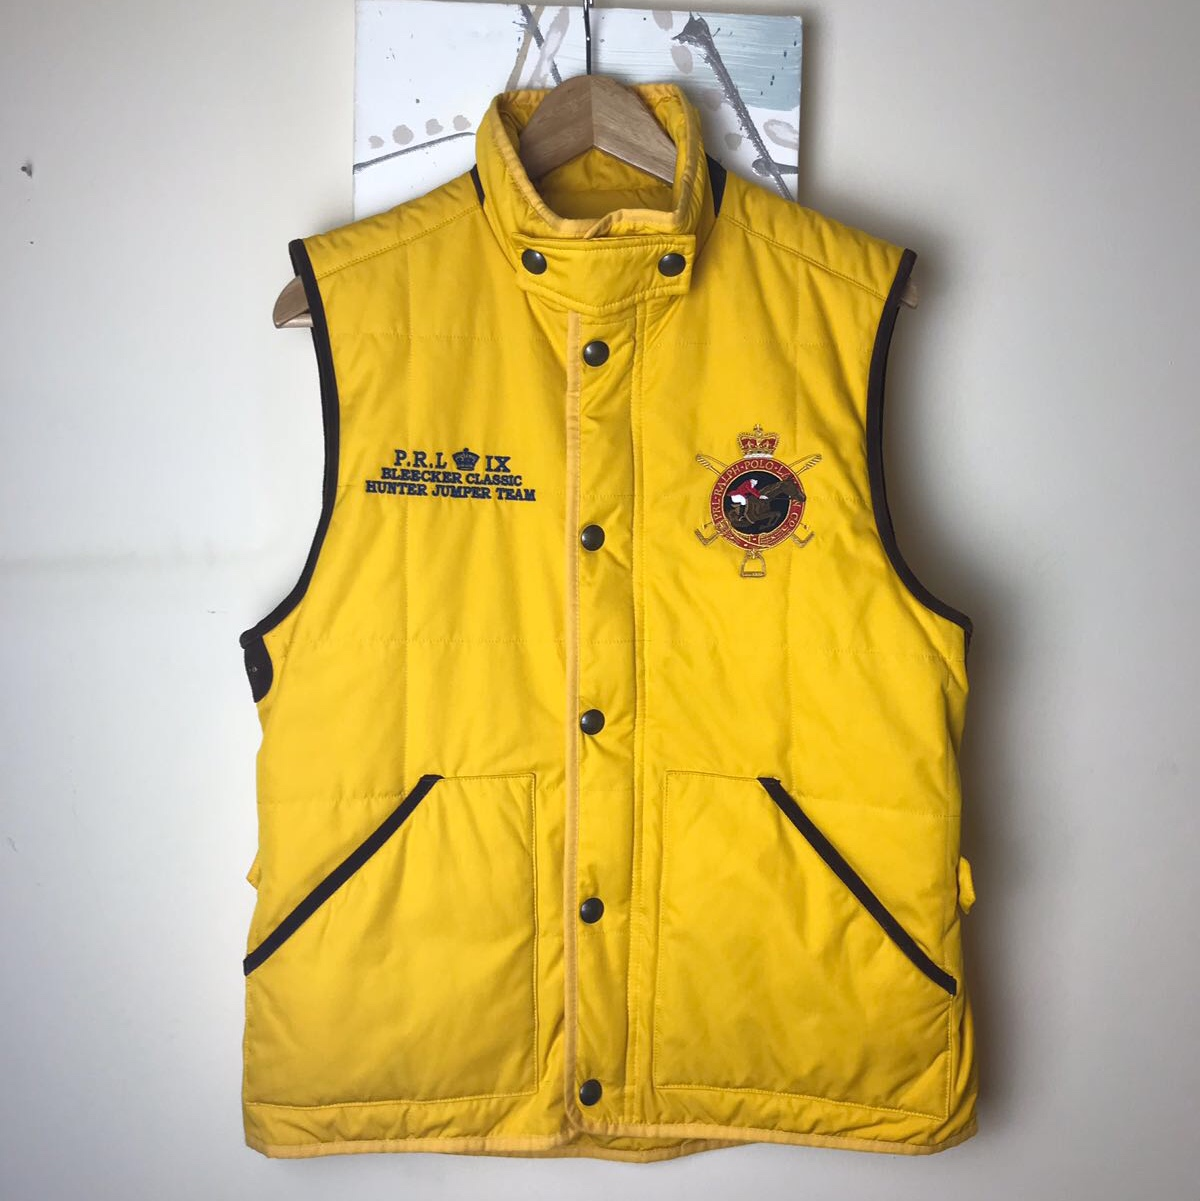 Ralph Lauren Horse Riding Jacket In Yellow With A Depop